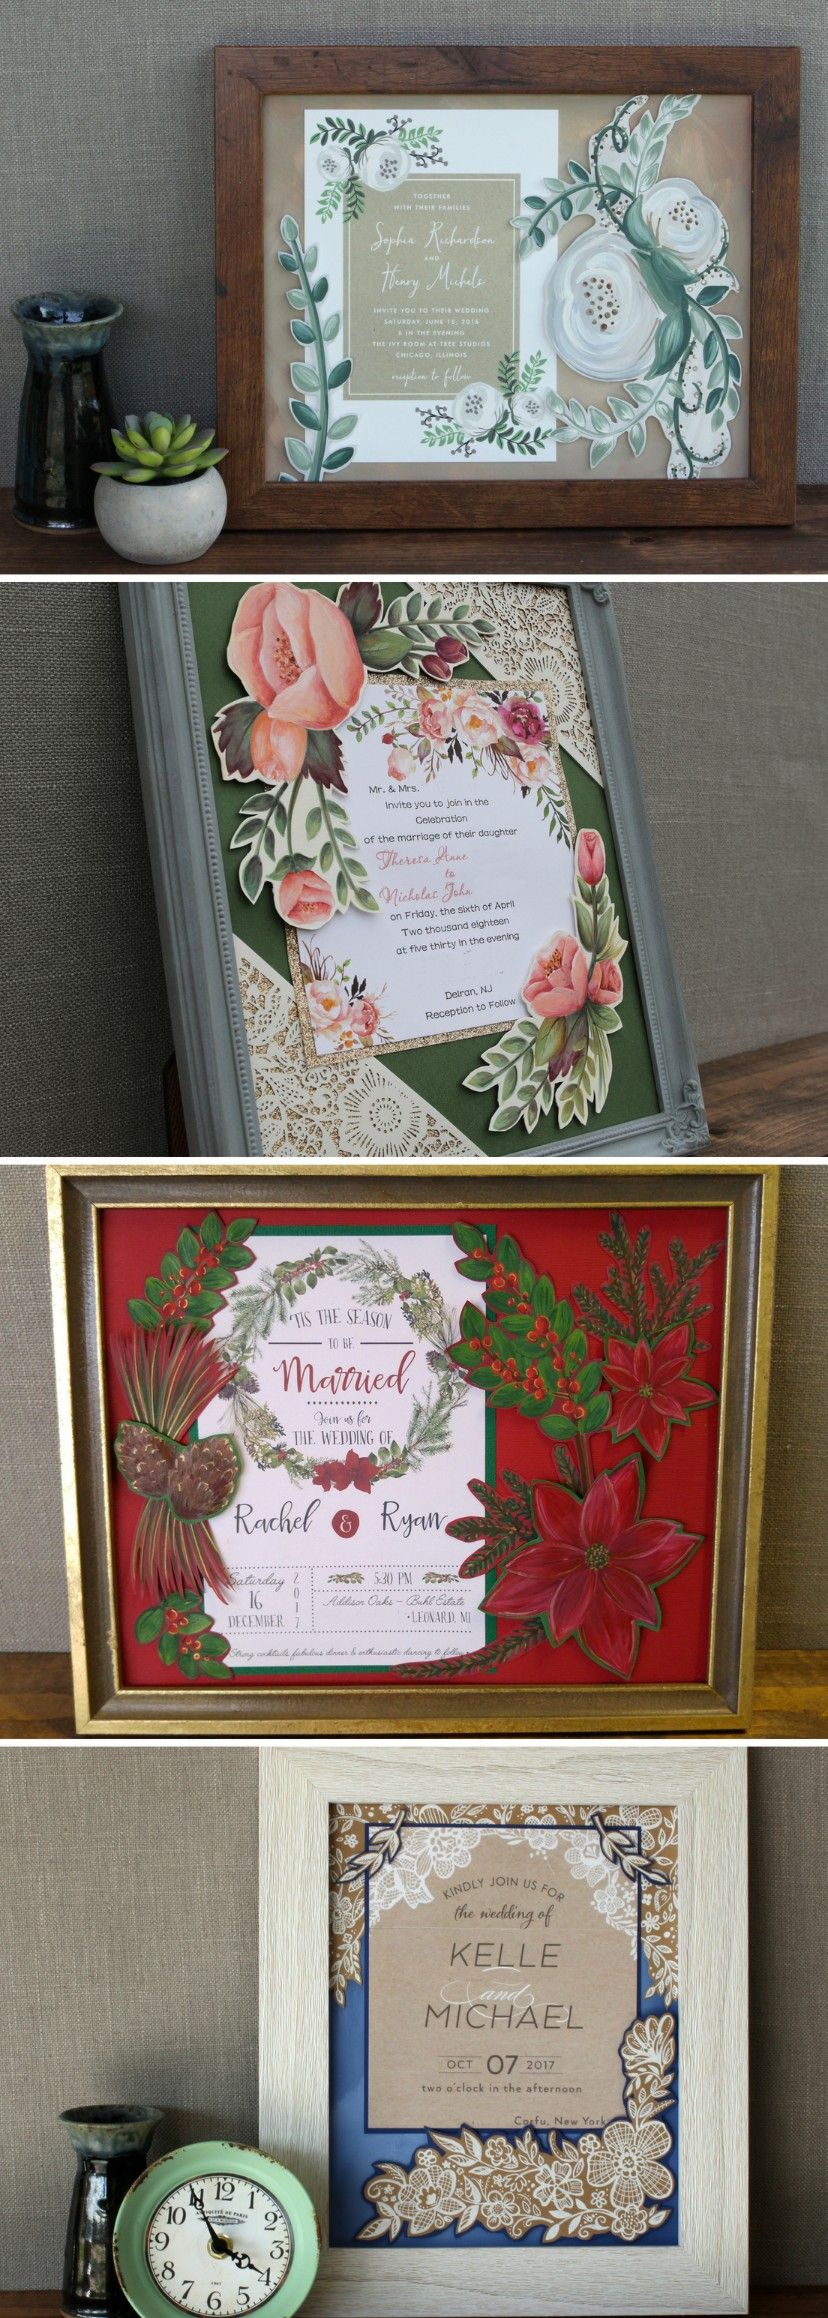 Framed Wedding Invitation Painting 8 X 10 Unique Wedding Gift For